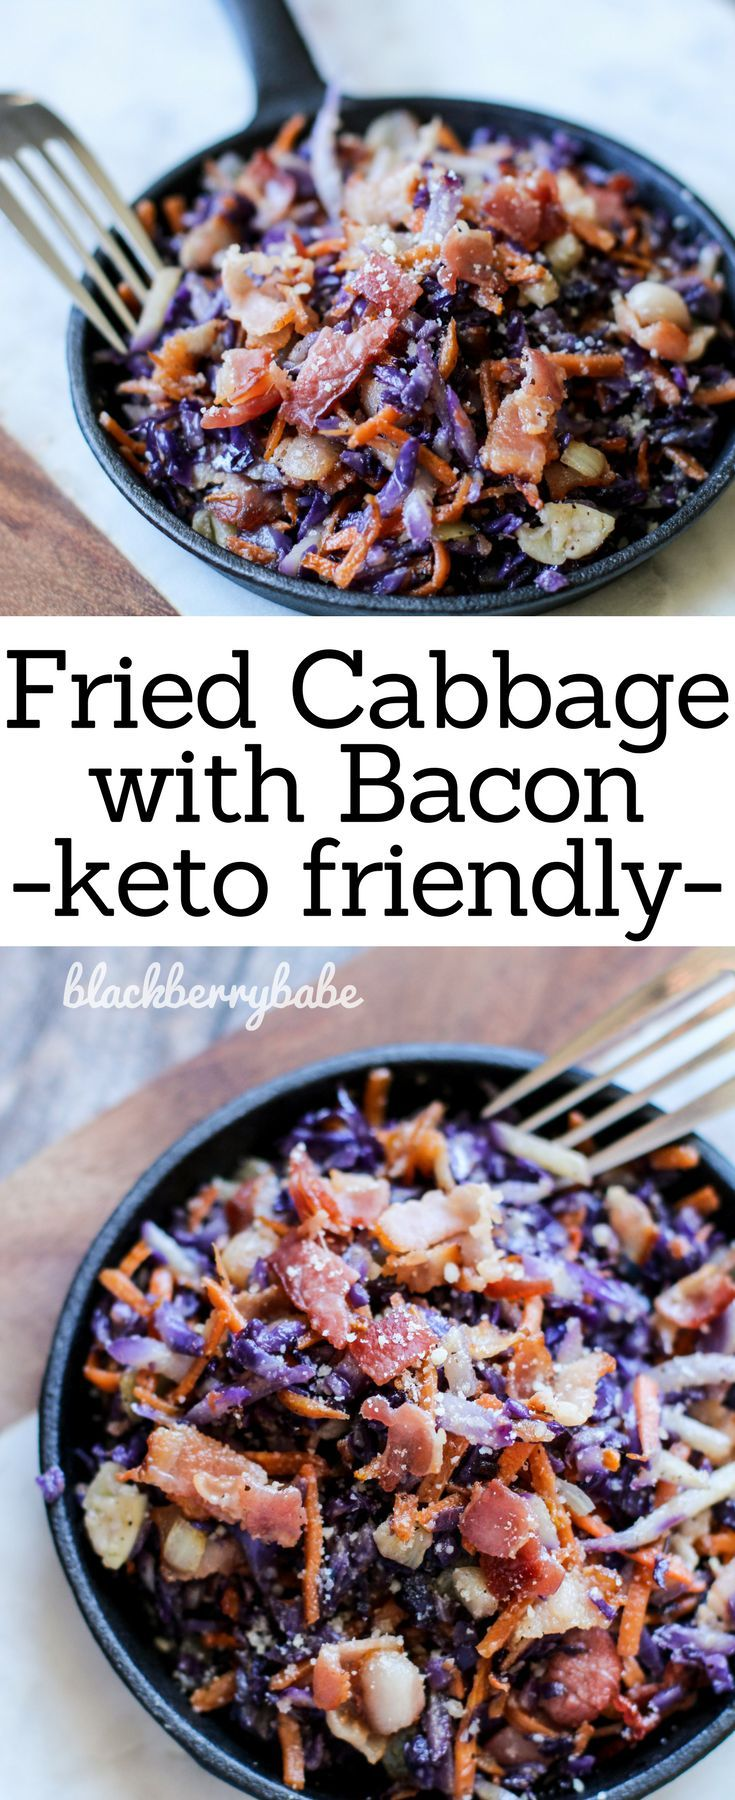 131677 Best Eating Healthy Images On Pinterest Cooking